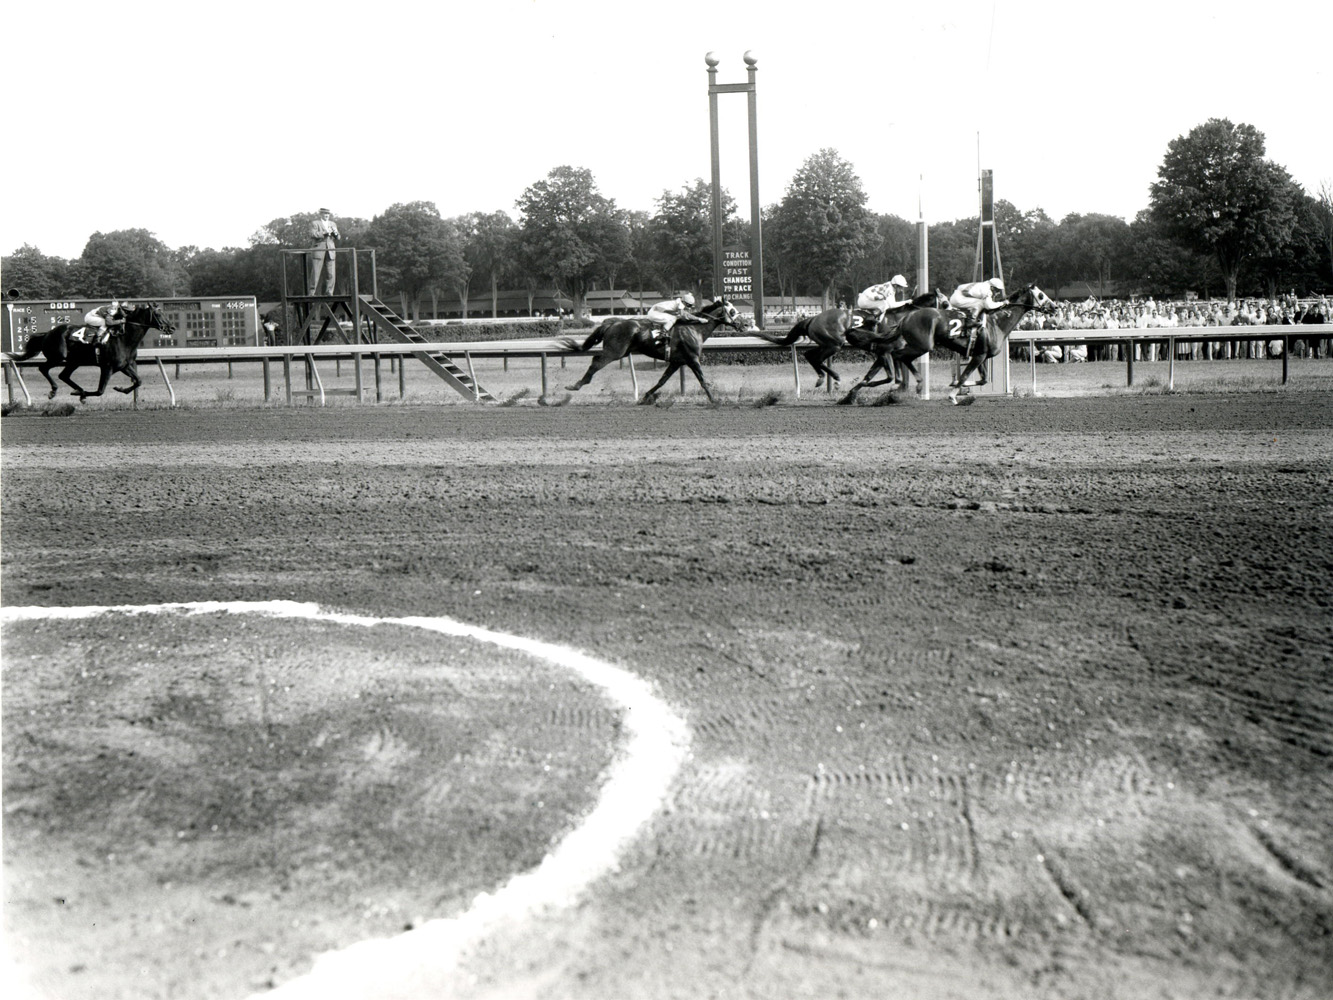 Sword Dancer (Manuel Ycaza up) winning the 1959 Travers at Saratoga (Keeneland Library Morgan Collection/Museum Collection)